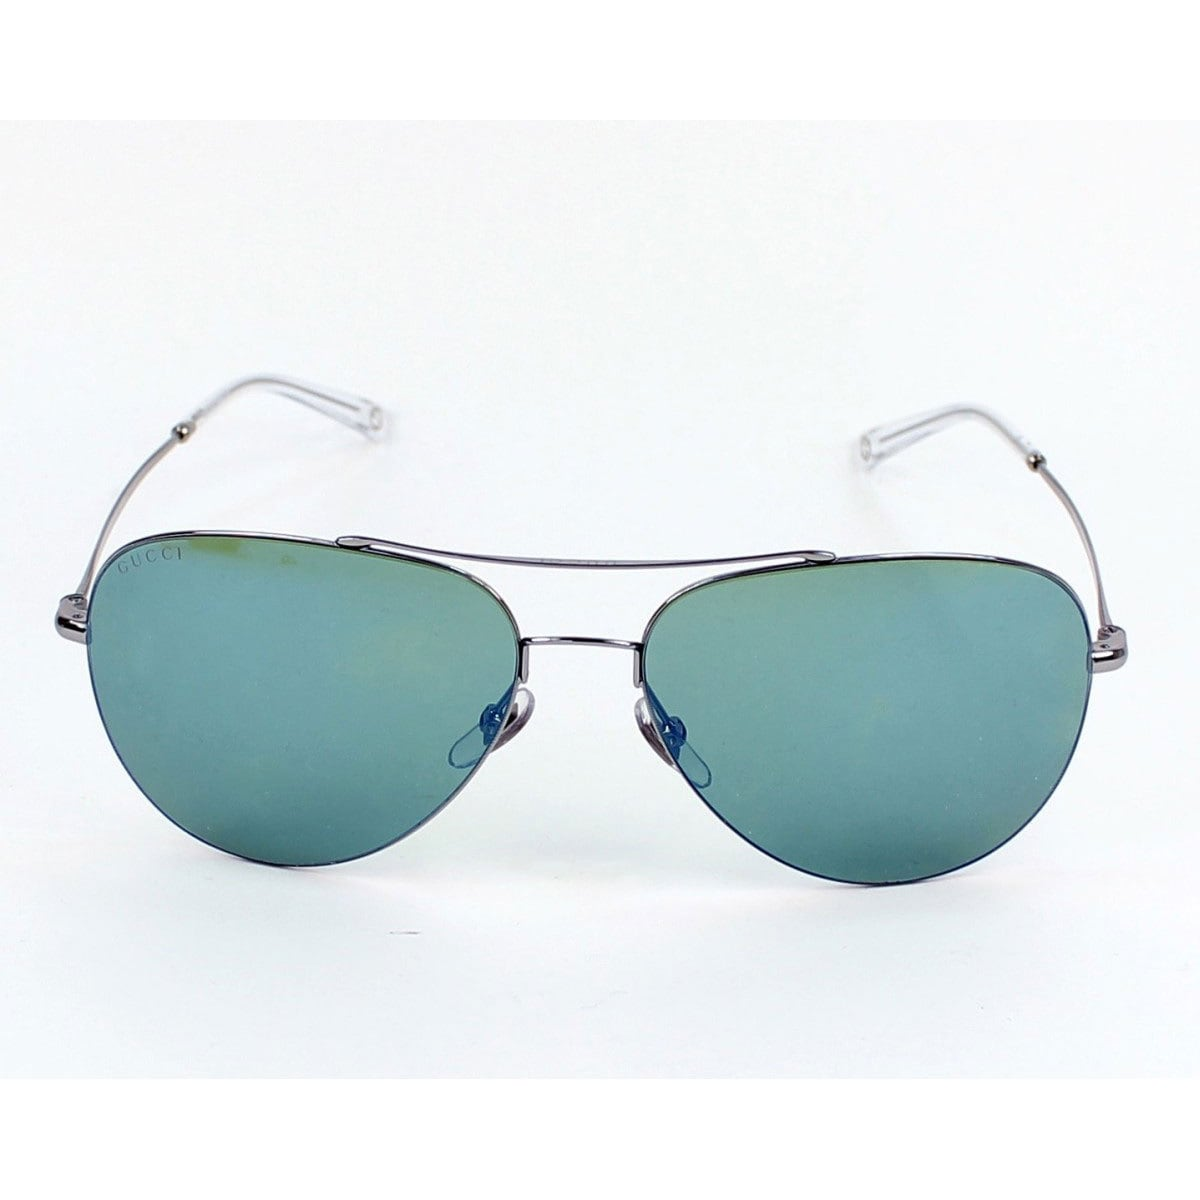 434573fc959 Shop Gucci  GG 2245 S 6LBHZ  Ruthenium Grey Aviator Sunglasses (As Is Item)  - Free Shipping Today - Overstock - 16171584